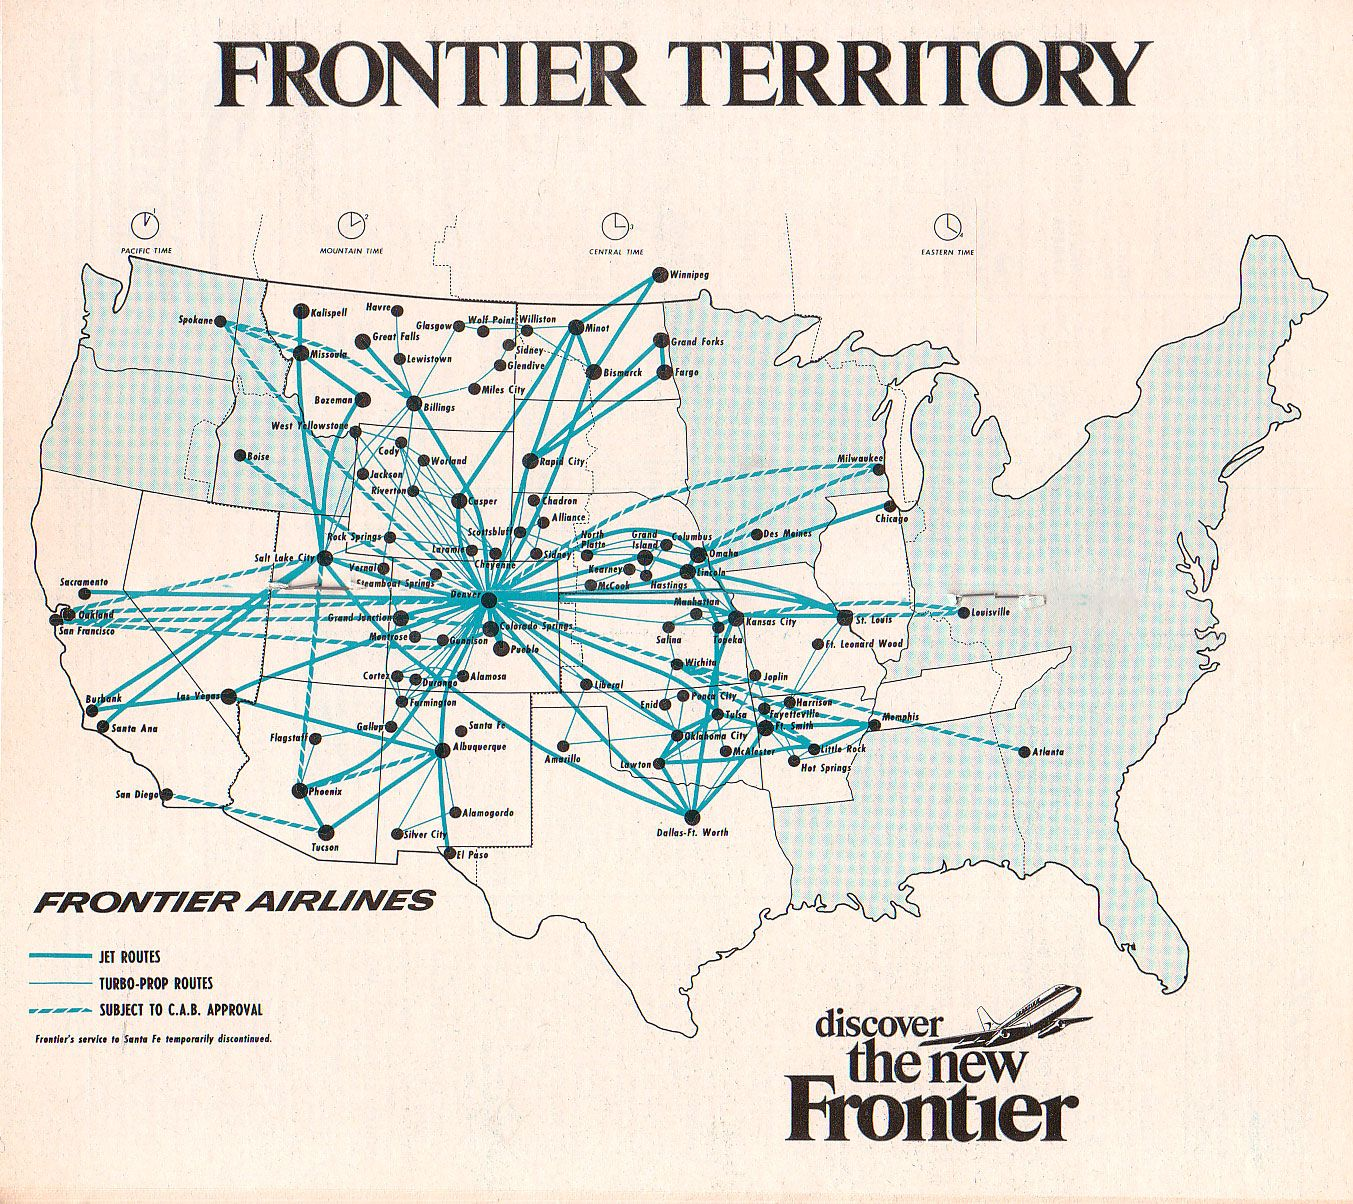 More Old Airline Route Maps Maps Pinterest - Us airways travel map